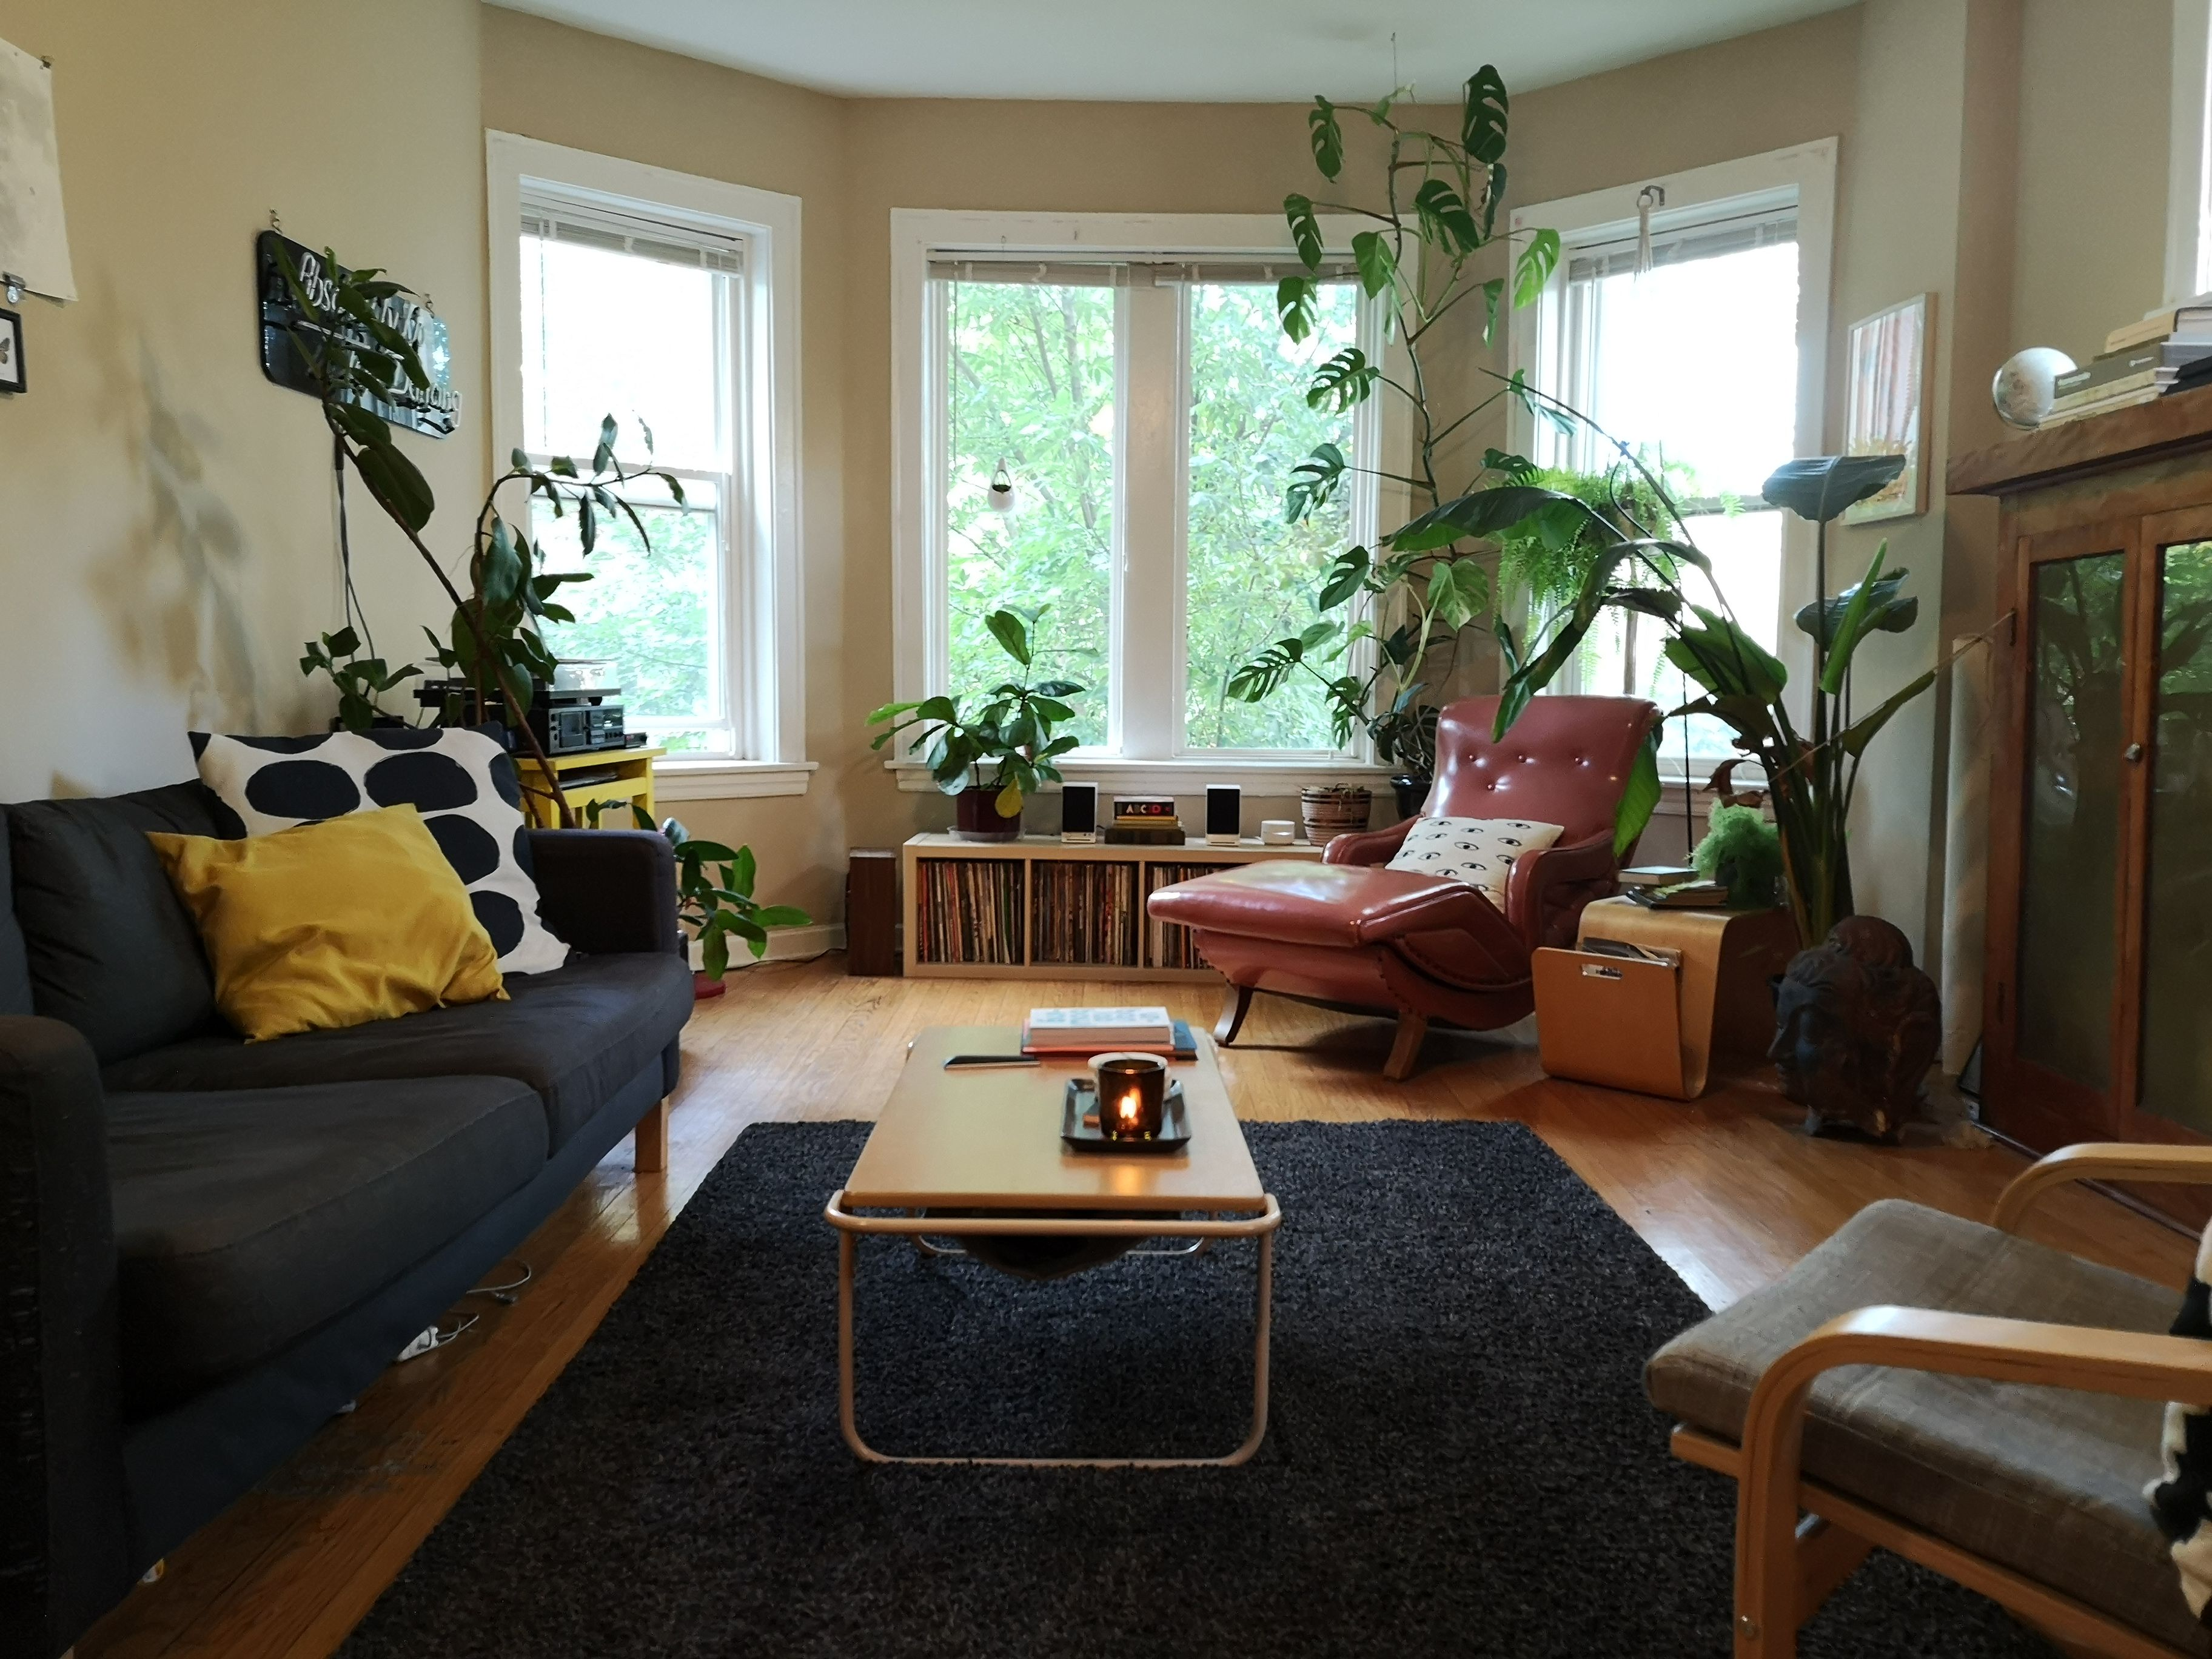 Vintage And Retro Living Room With Bay Windows Crown Molding Hardwood Floors Black Area Rug Black Vintage Apartment Decor Apartment Decor Vintage Apartment